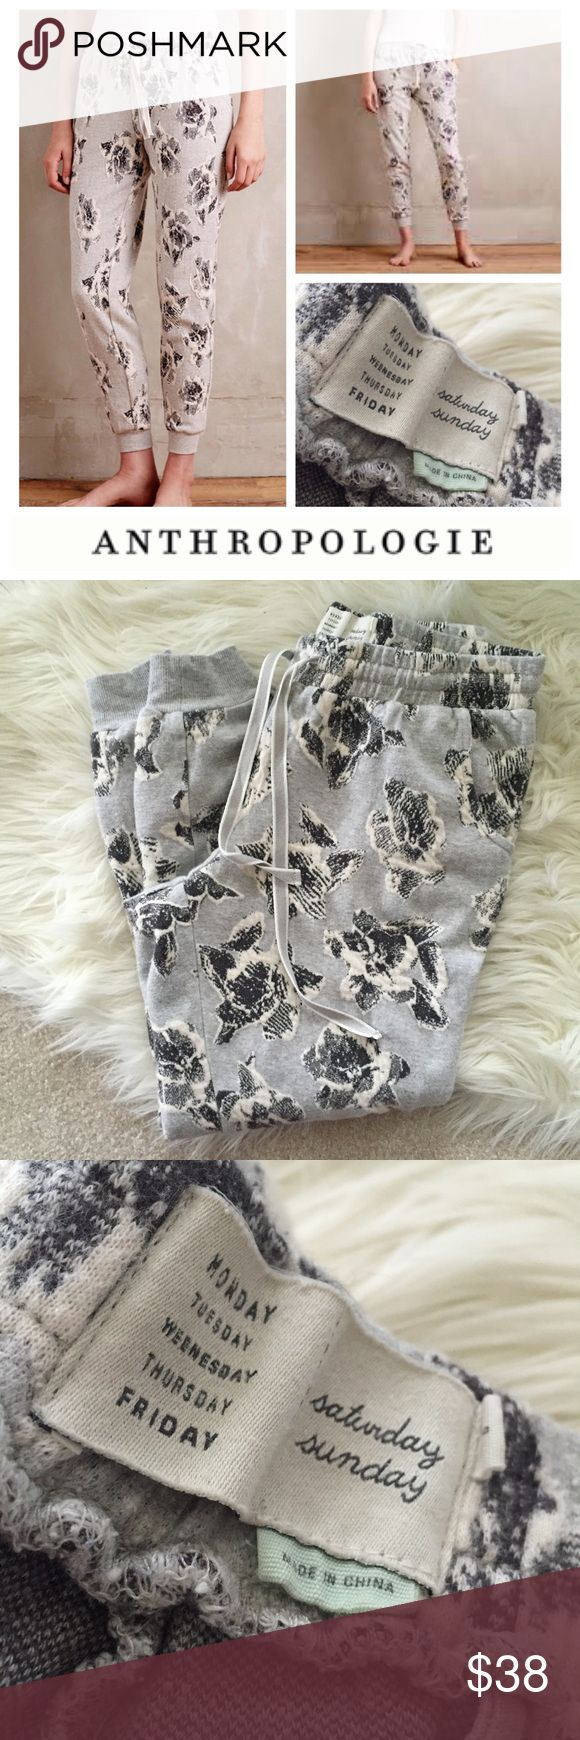 Anthropologie Graybloom Joggers by Saturday/Sunday Anthropologie Graybloom harem sweatpants / joggers with beautiful gray and white floral print throughout. Size S. Smoke and pet free home. Hope you enjoy! 💕 Anthropologie Pants